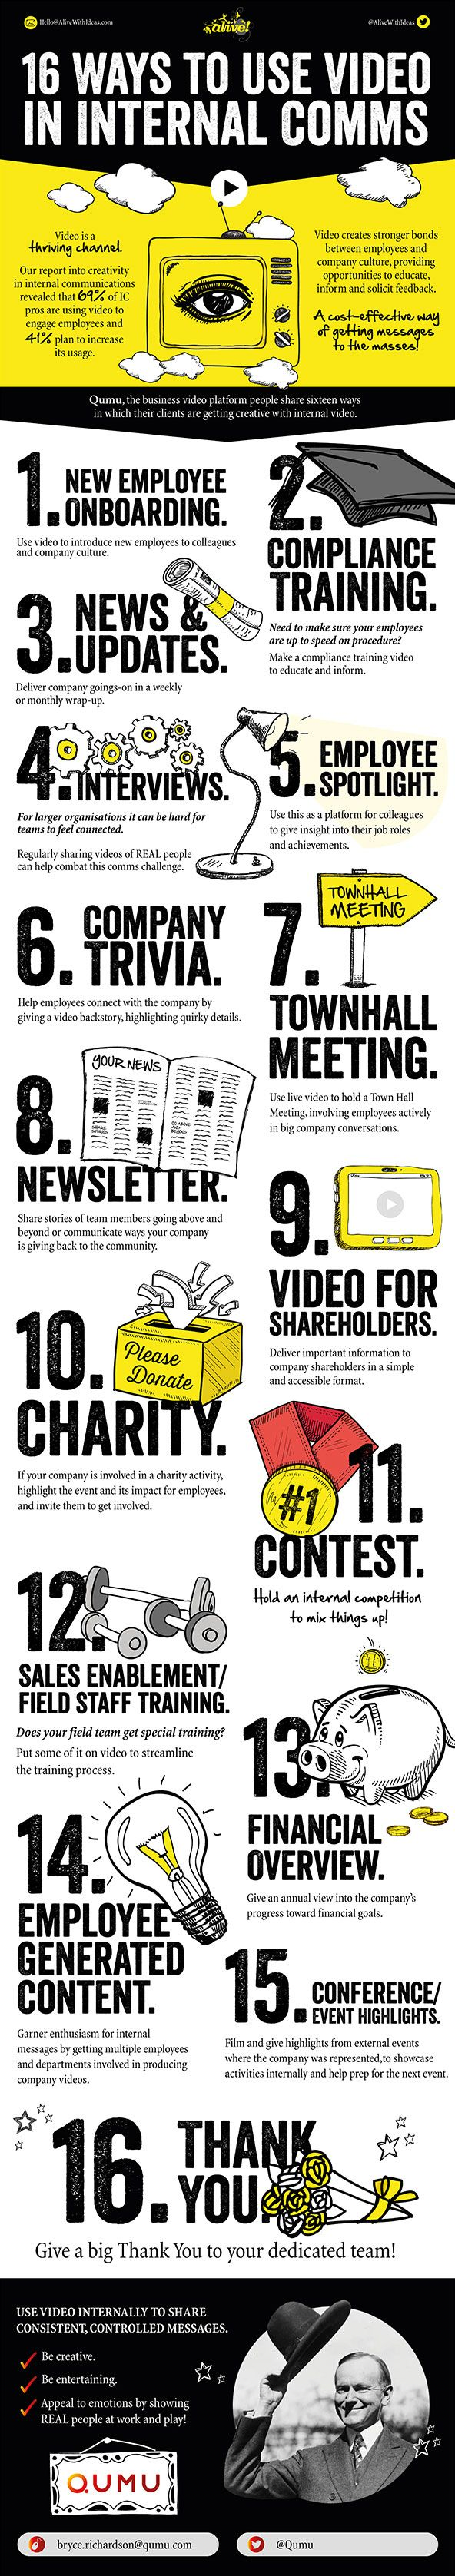 INFOGRAPHIC: 16 Ways to Use Video in Internal Comms